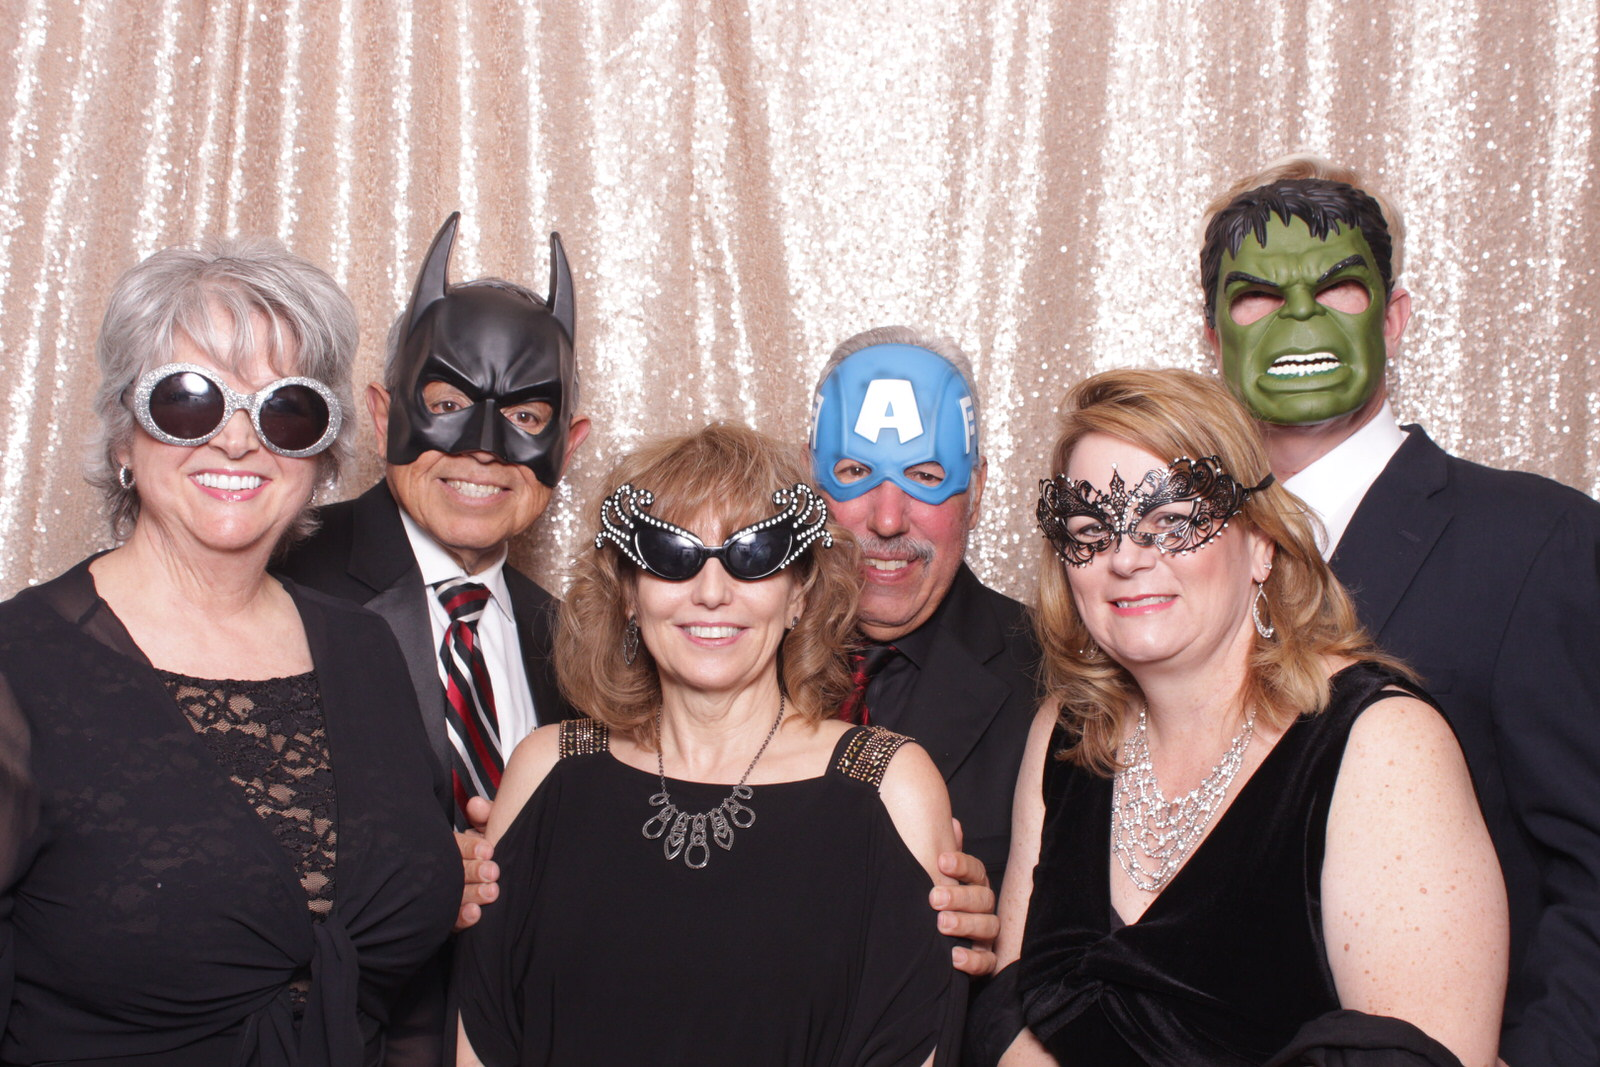 {{location}} - Photo Booth - Bayshore Medical Center Staff Gala